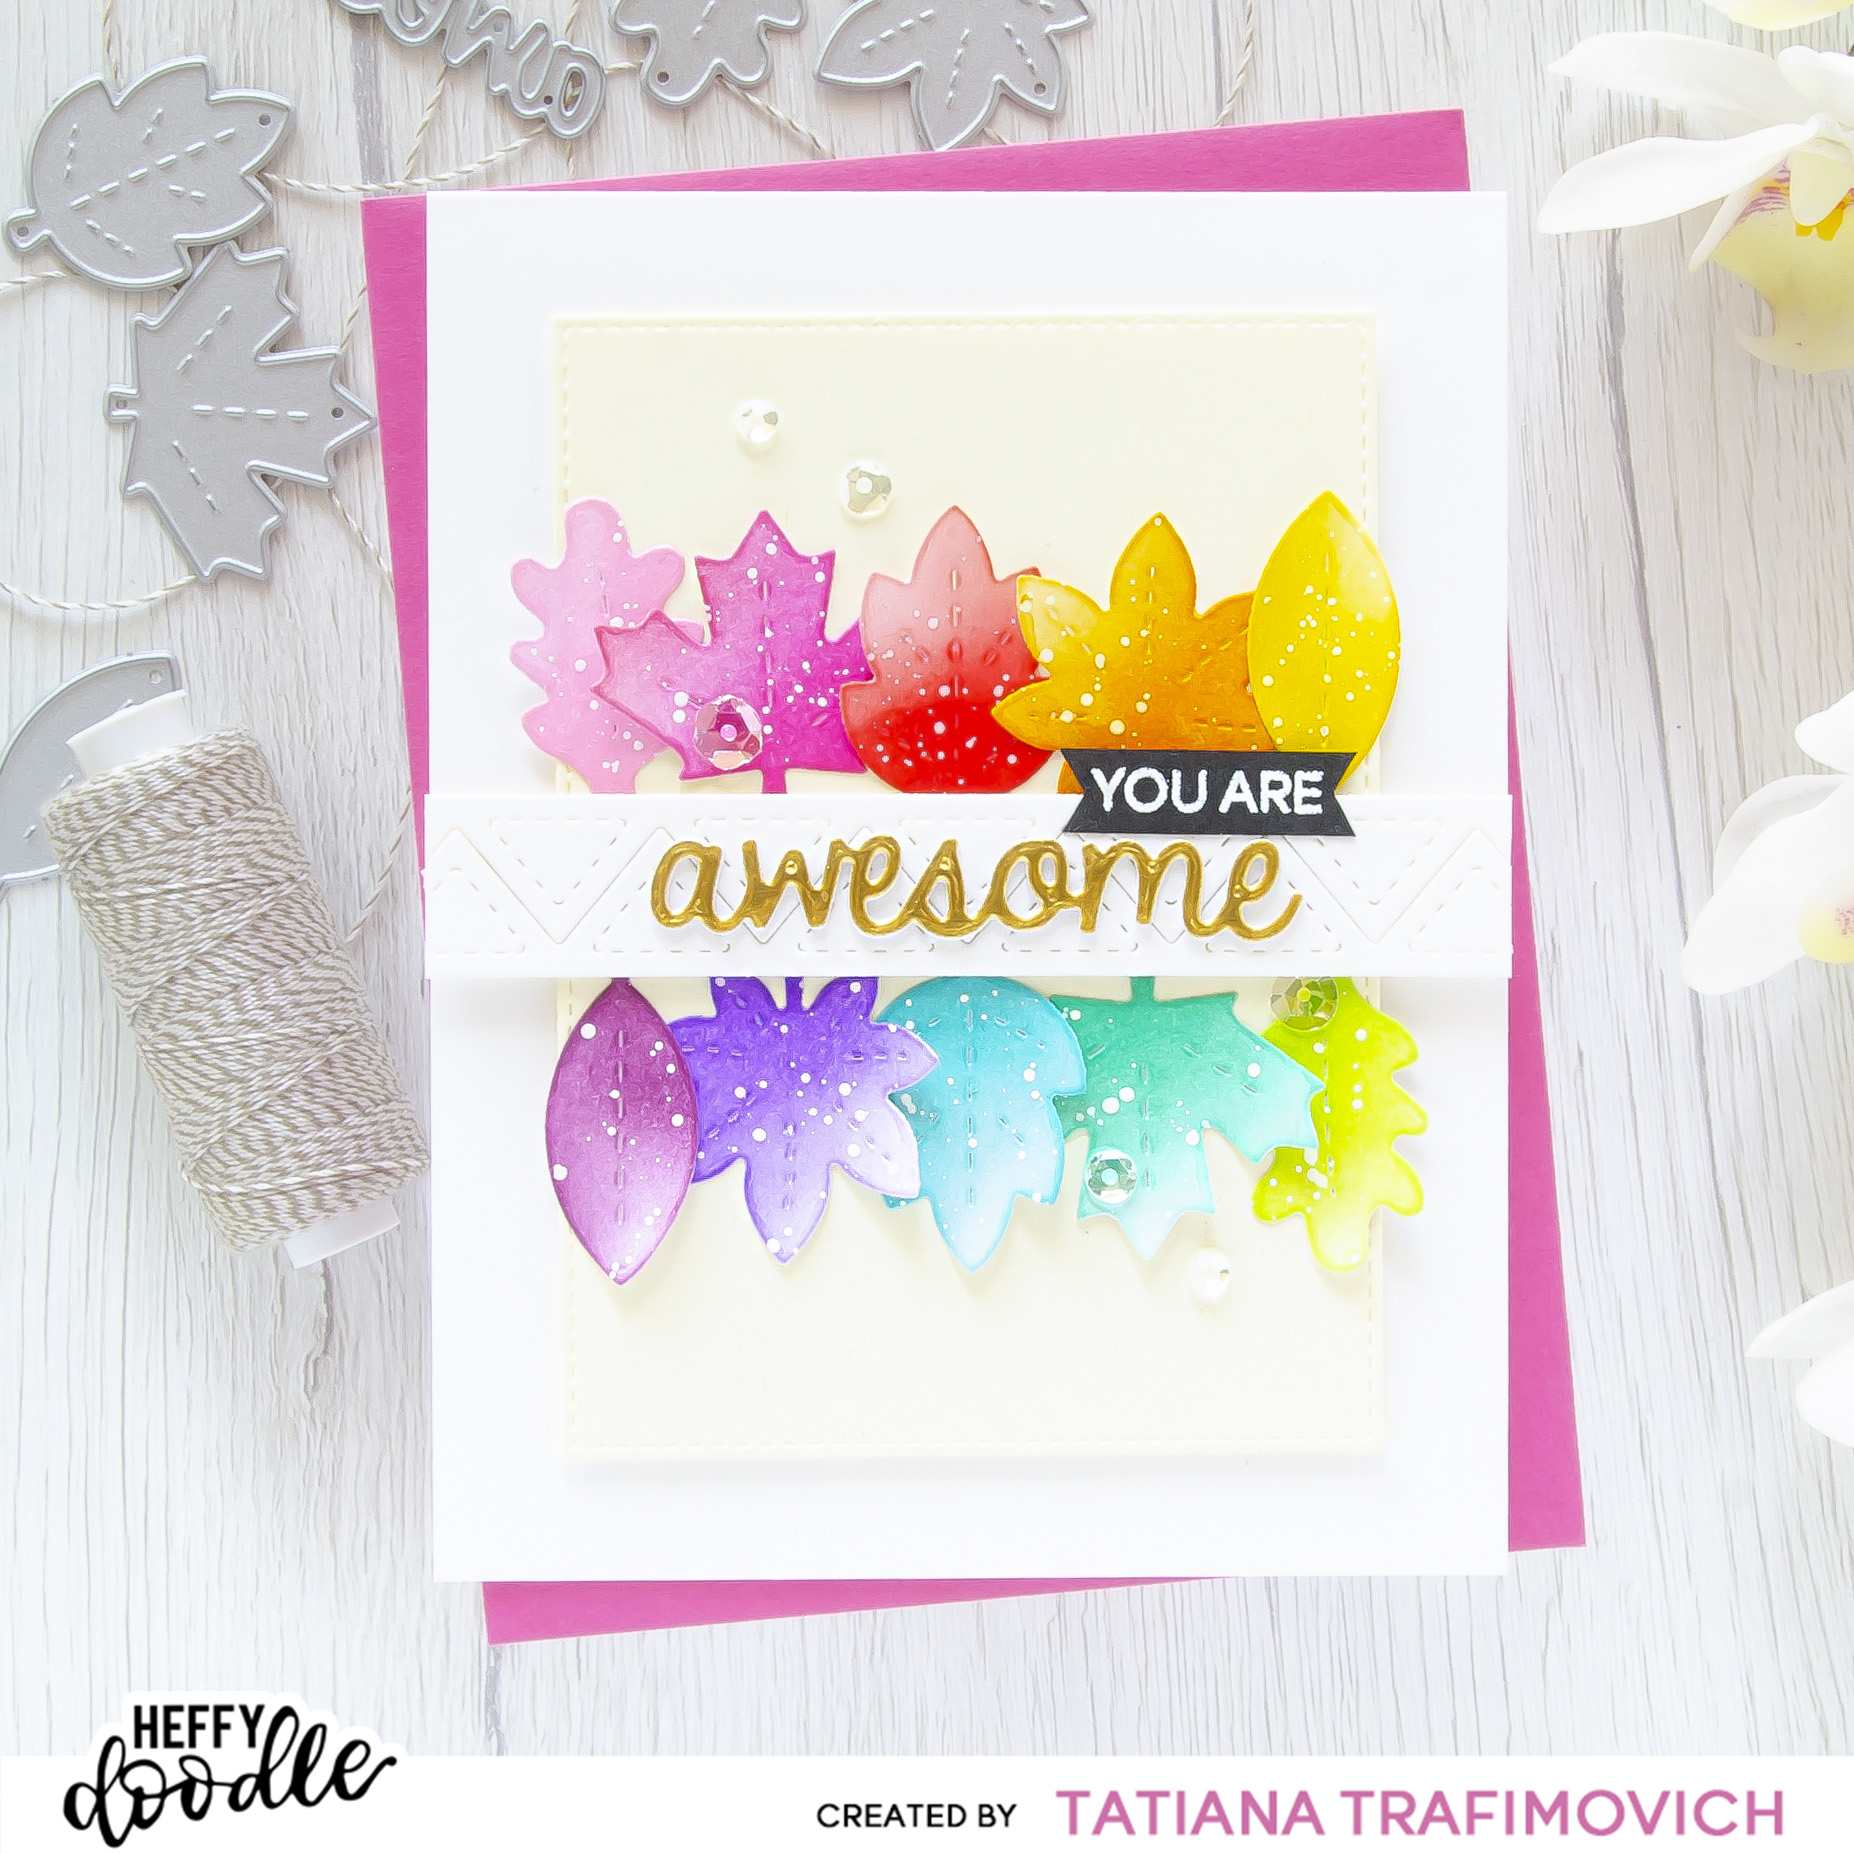 You Are Awesome #handmade card by Tatiana Trafimovich #tatianacraftandart - Forest Leaves Dies by Heffy Doodle #heffydoodle